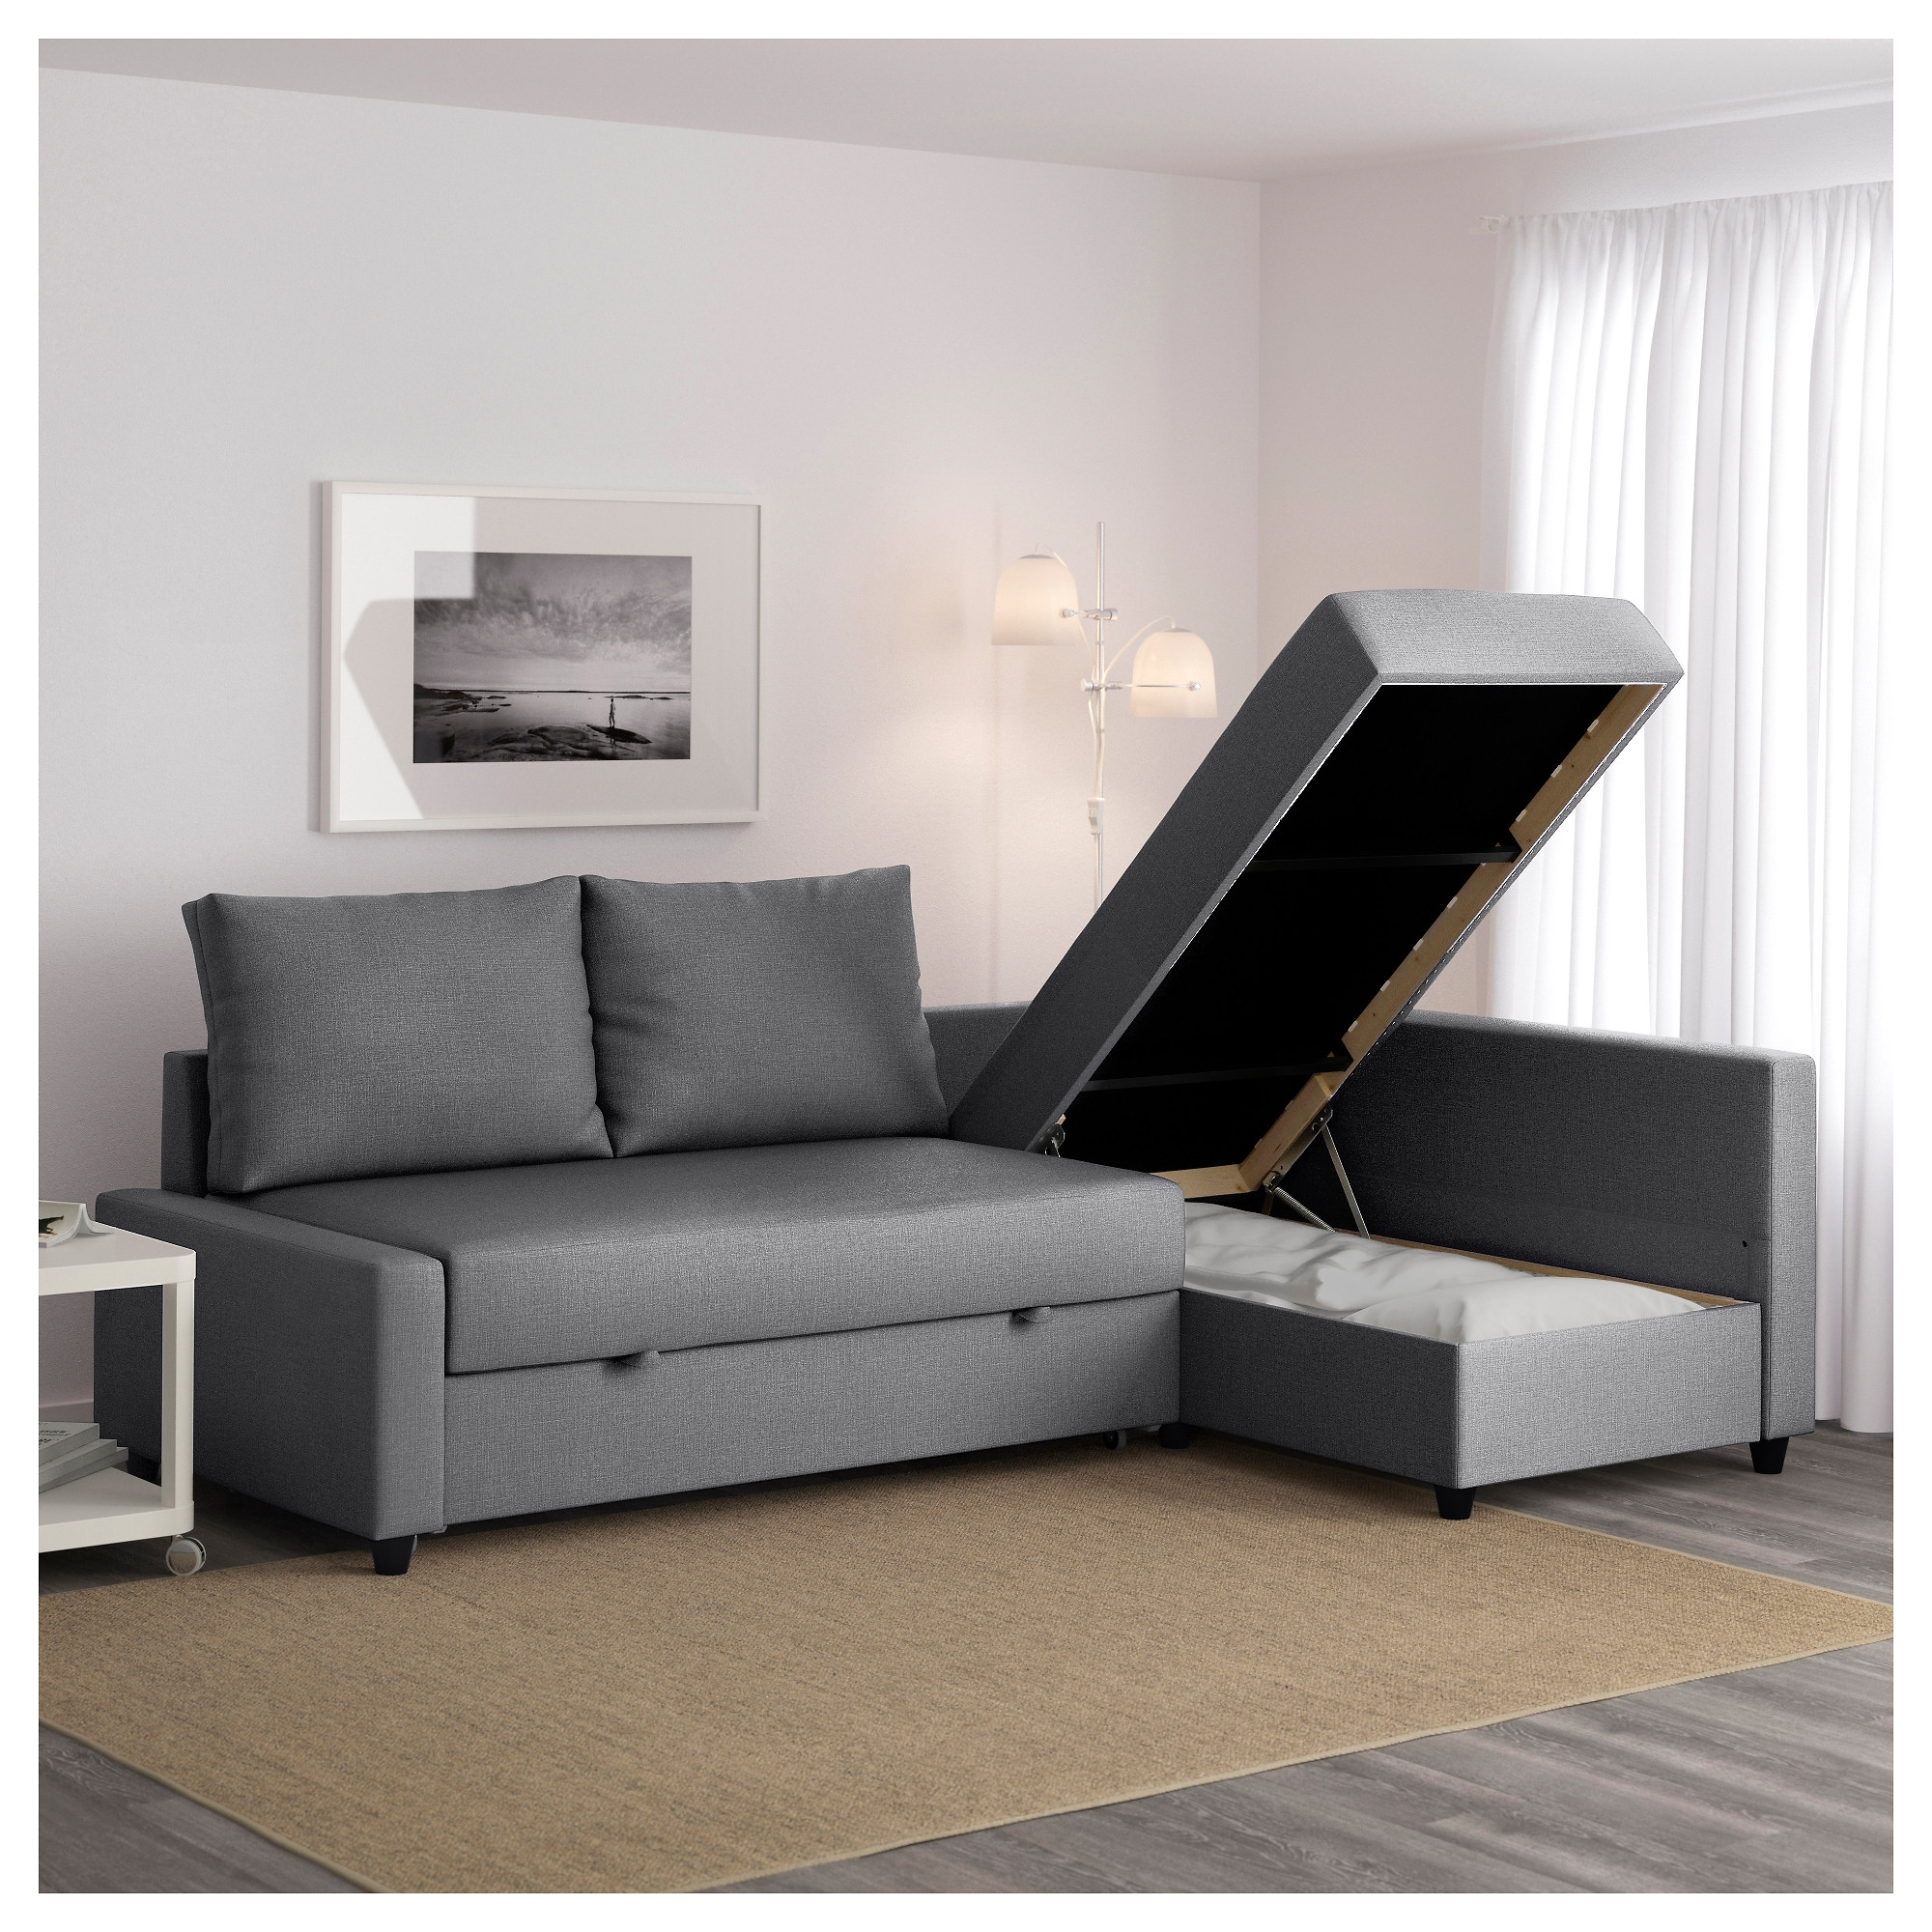 Trendy Ikea Corner Sofas With Storage With Friheten Corner Sofa Bed With Storage Skiftebo Dark Grey – Ikea (View 19 of 20)